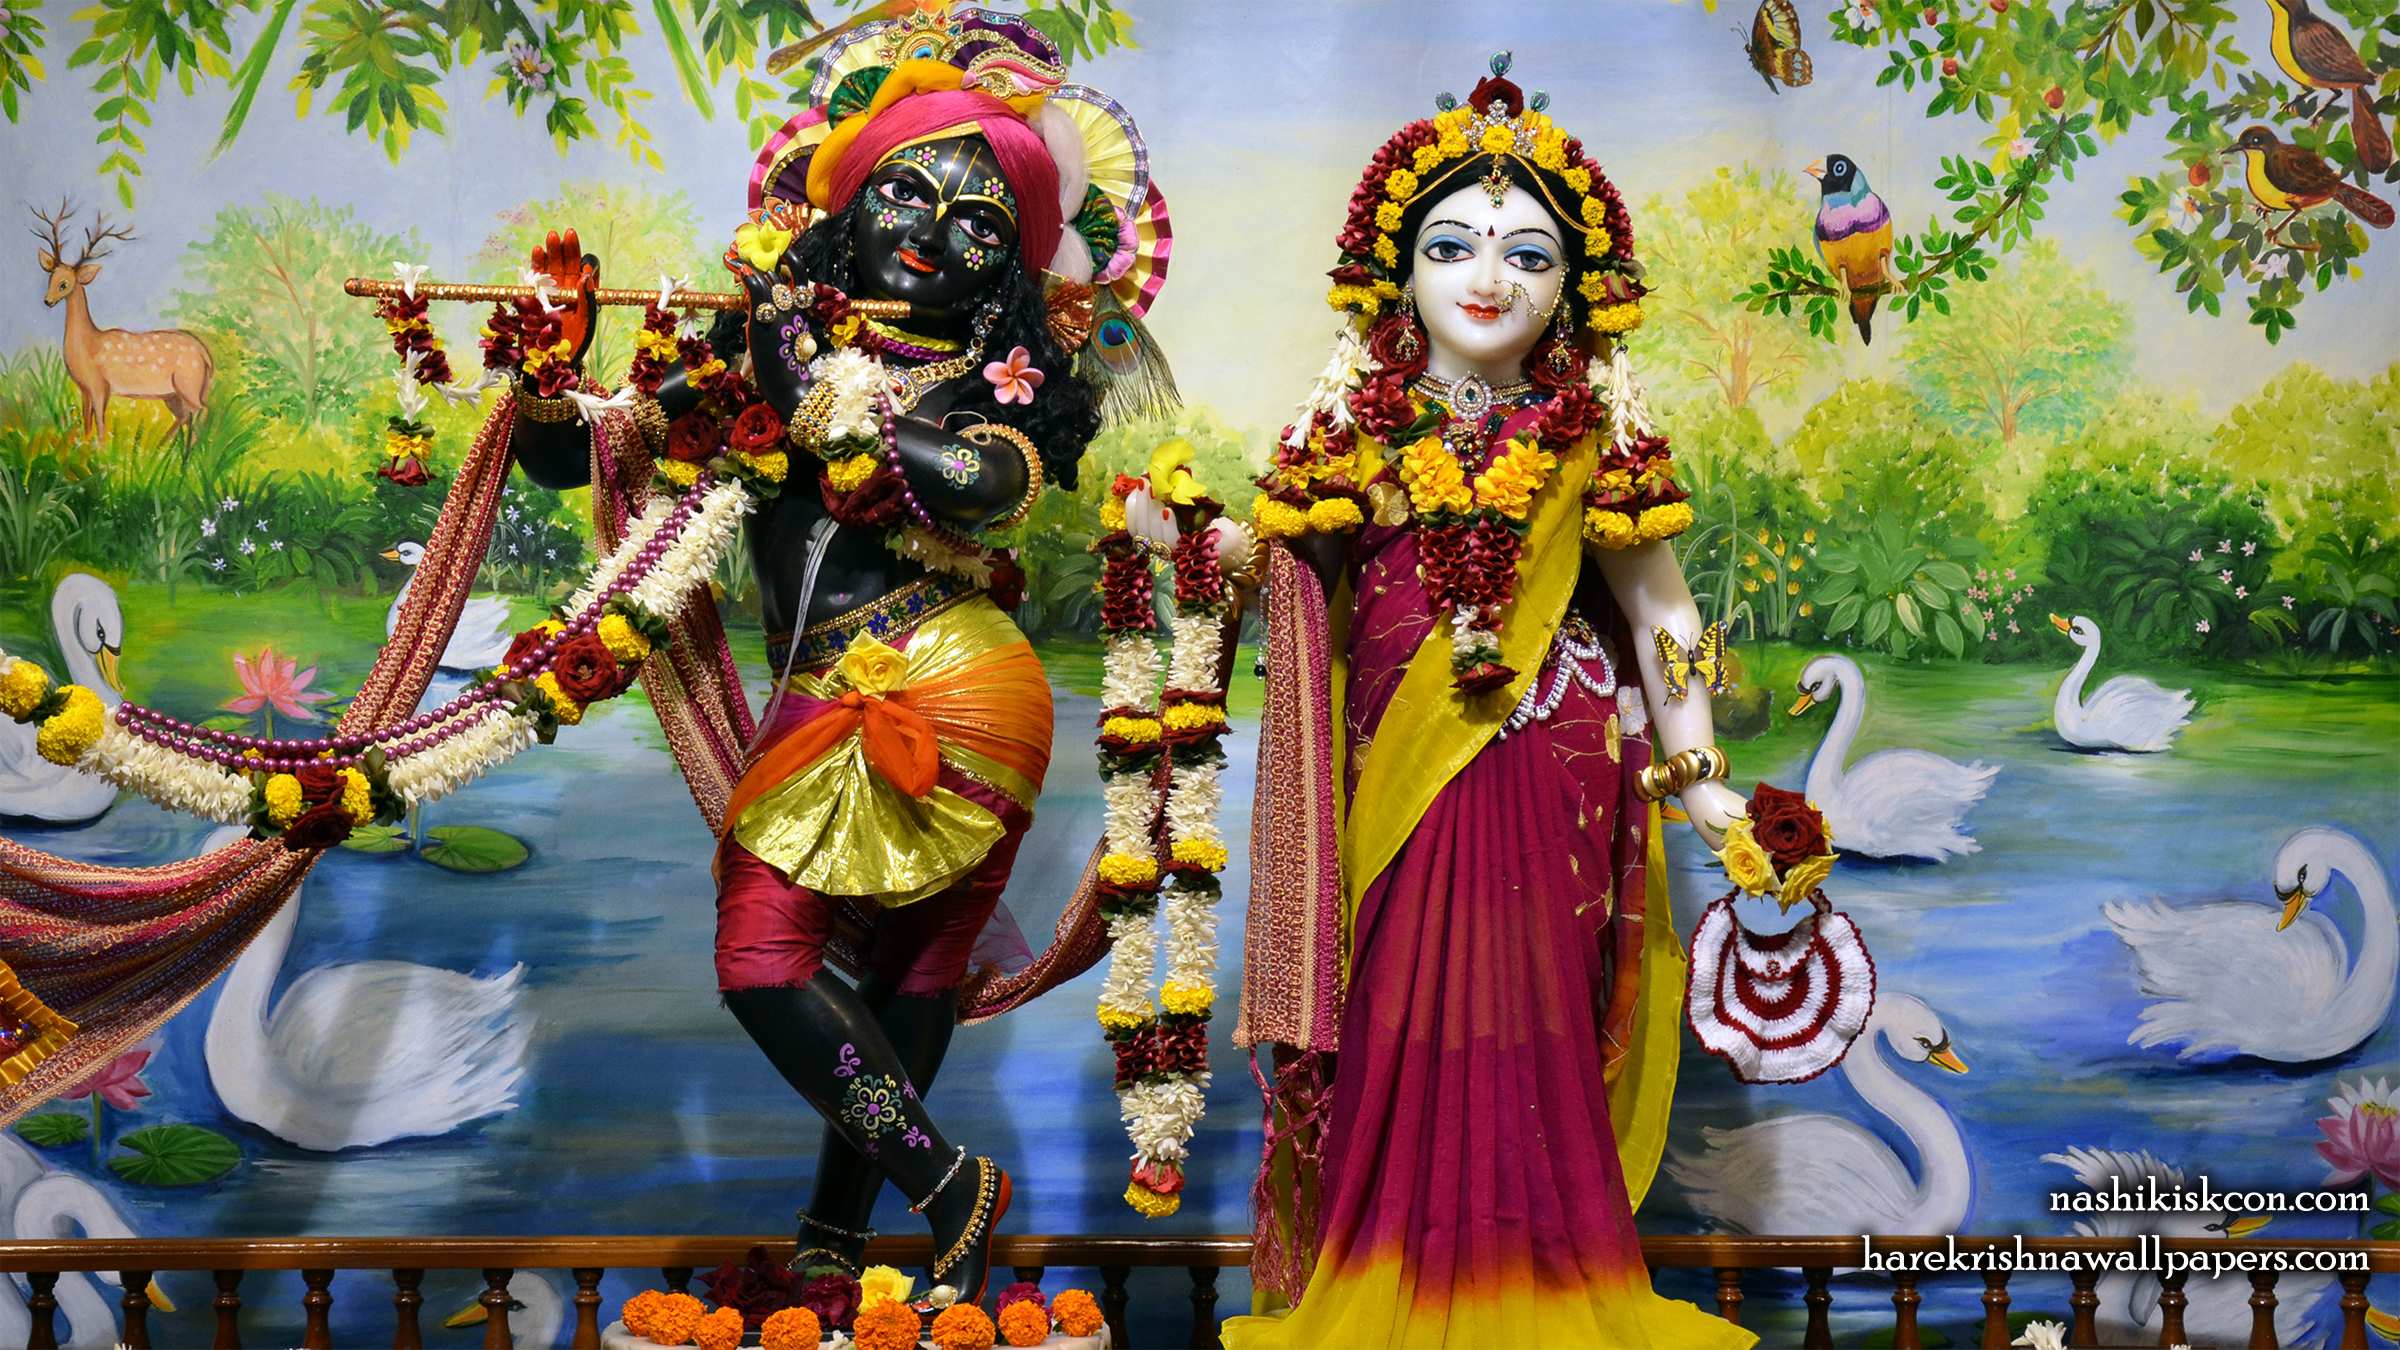 Sri Sri Radha Madan Gopal Wallpaper (008) Size 2400x1350 Download